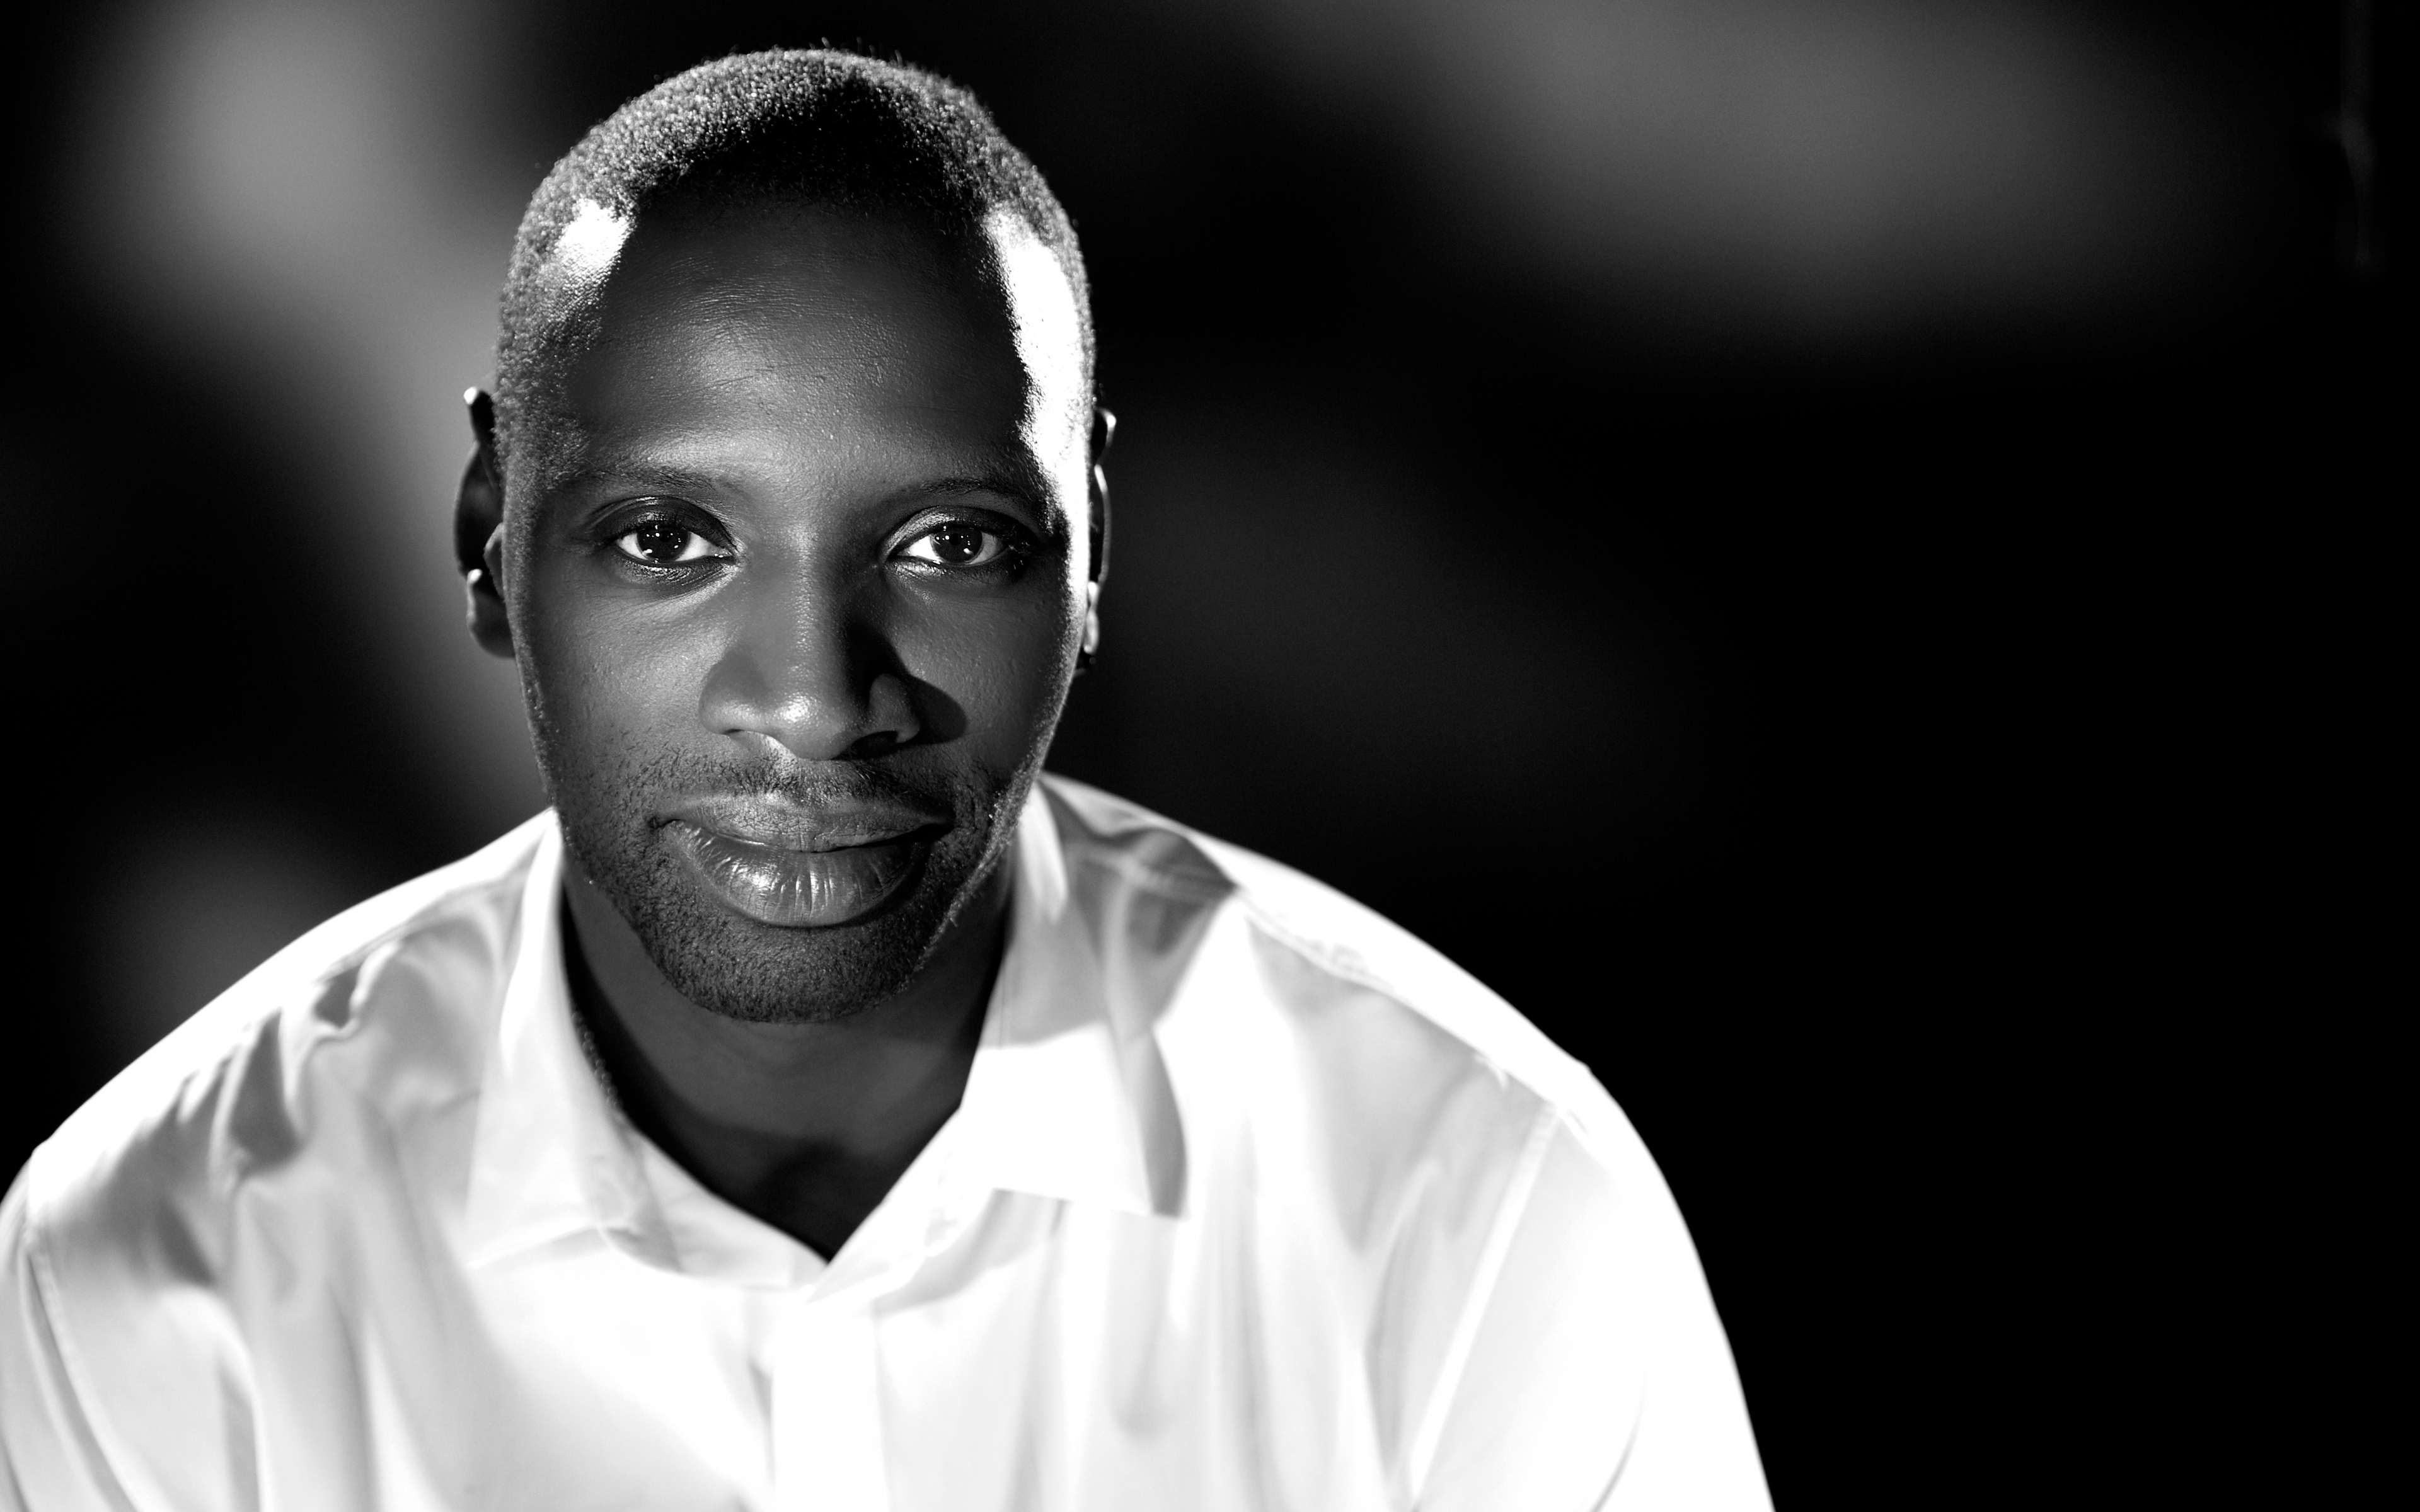 3840x2400 - Omar Sy Wallpapers 31